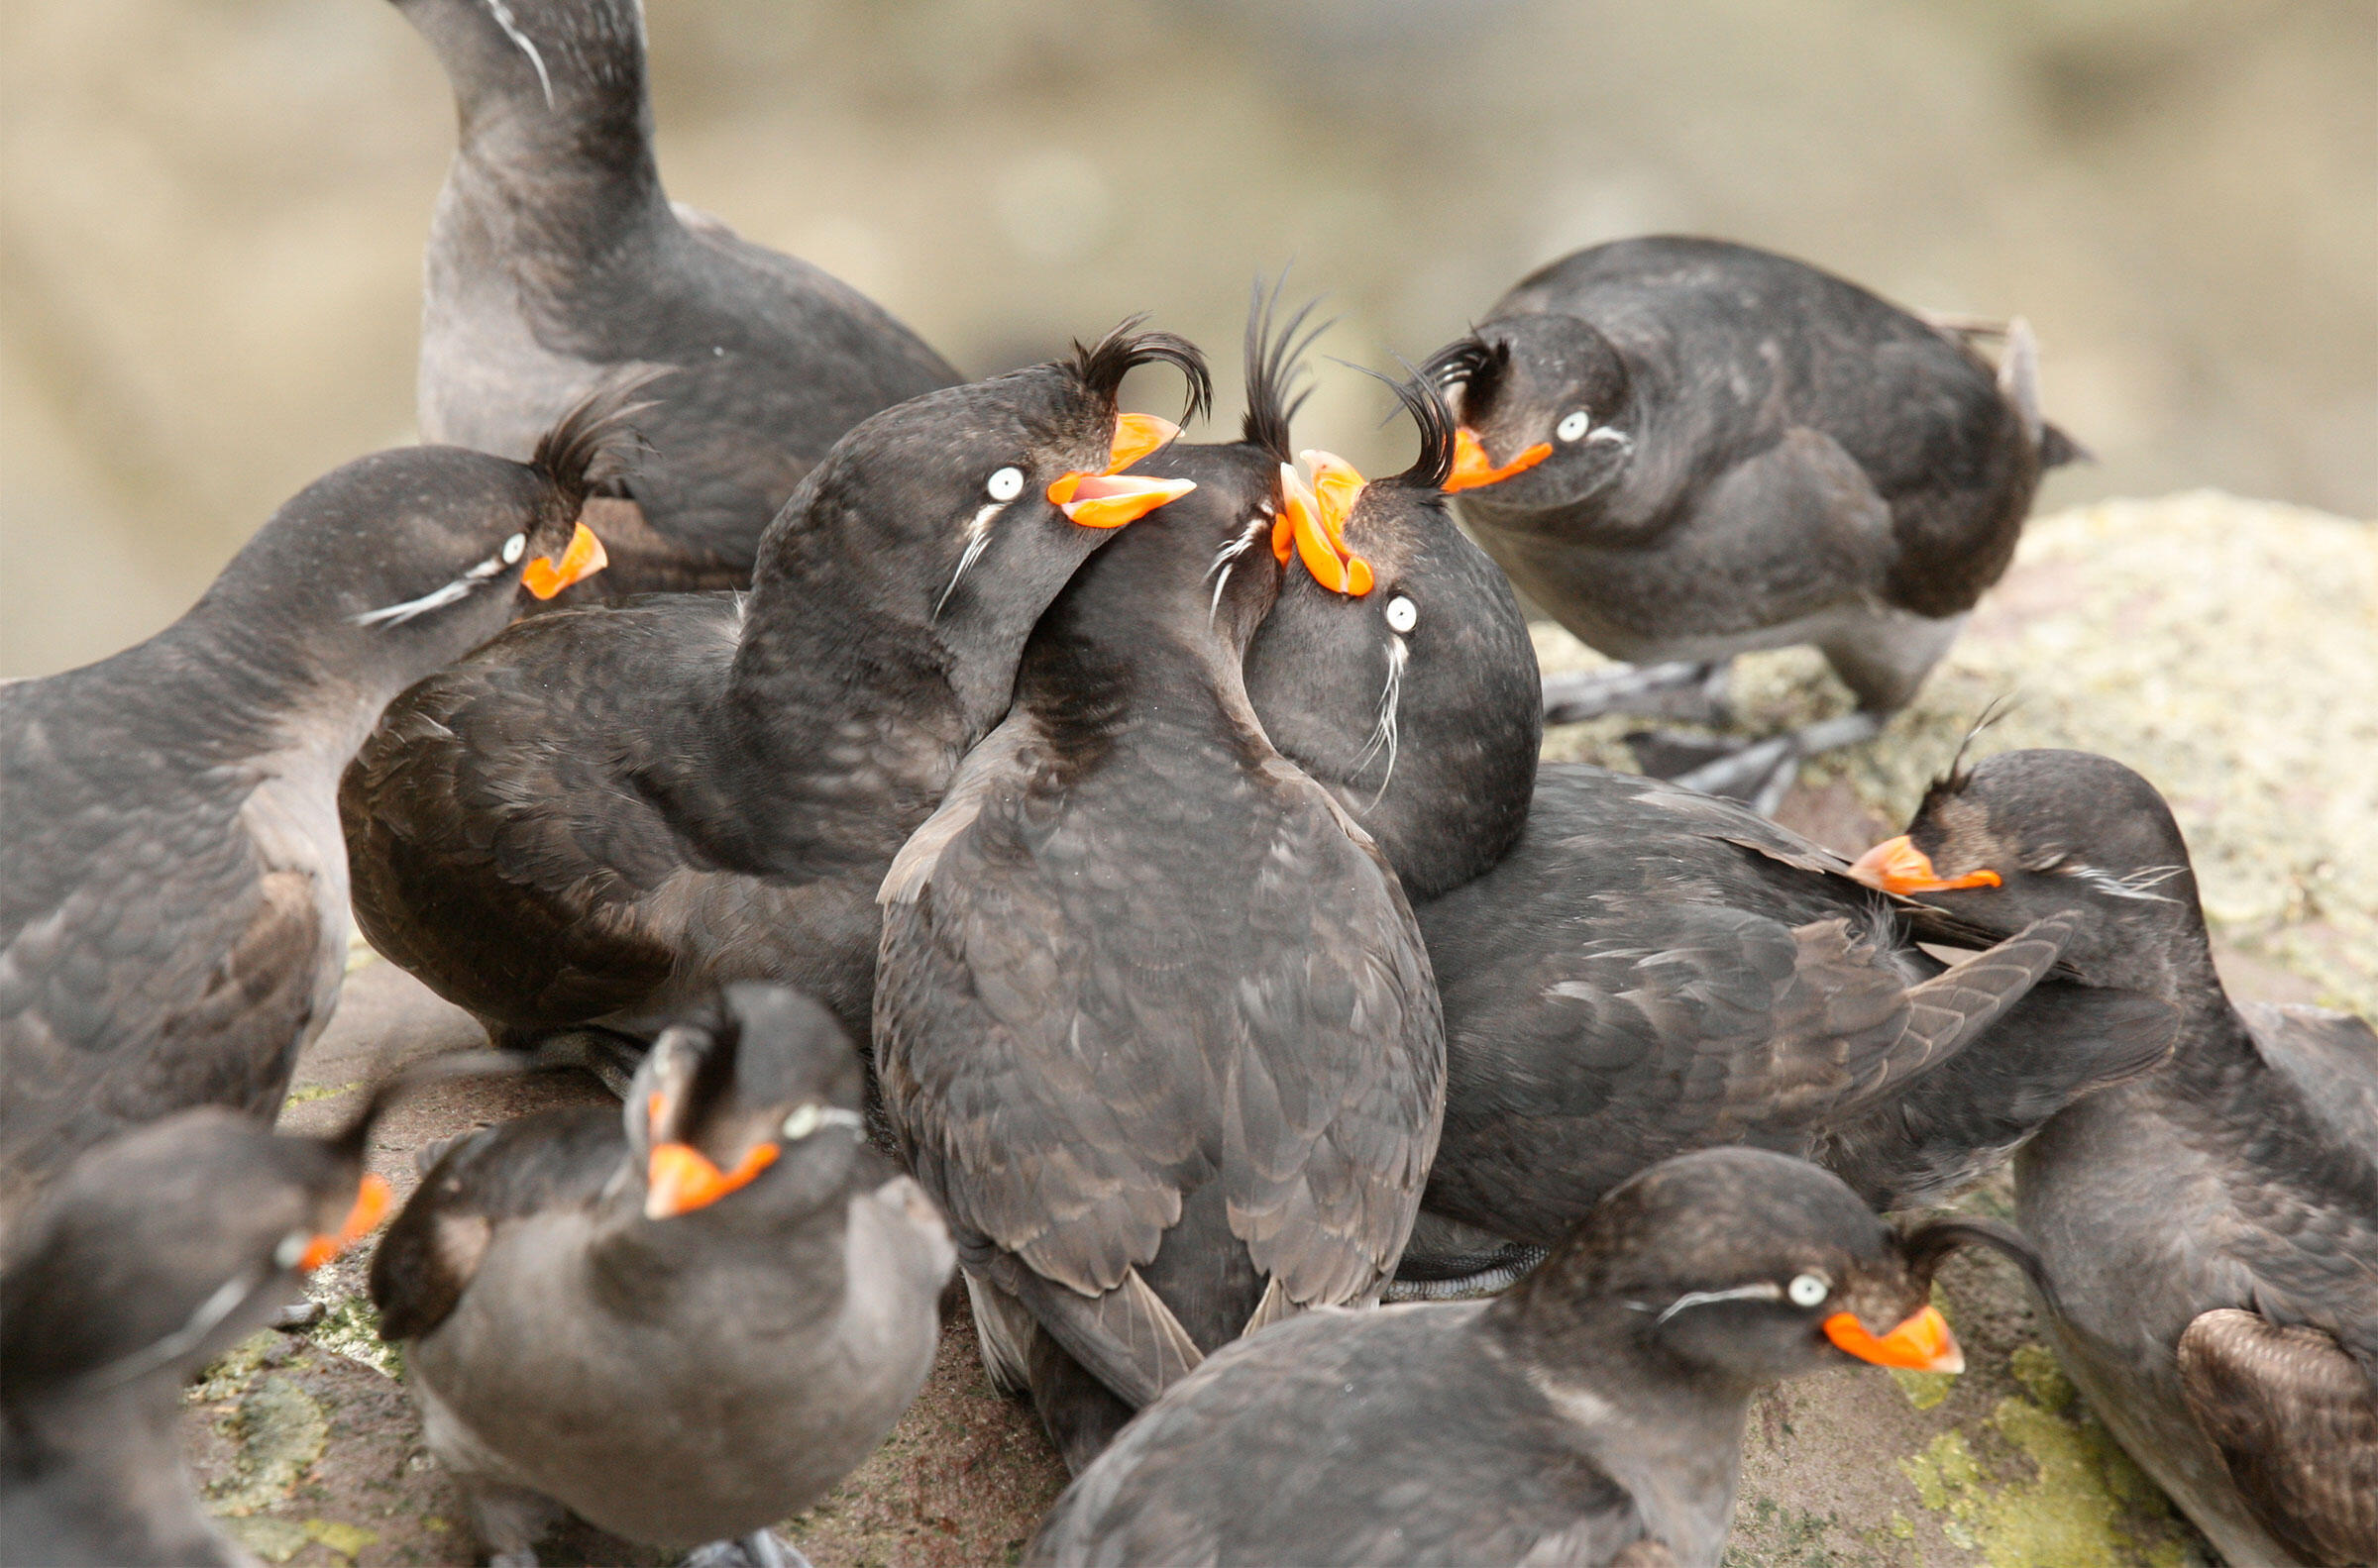 A typical Crested Auklet 'scrum' involving a central courting pair and surrounding excited participants and onlookers. Ian L. Jones